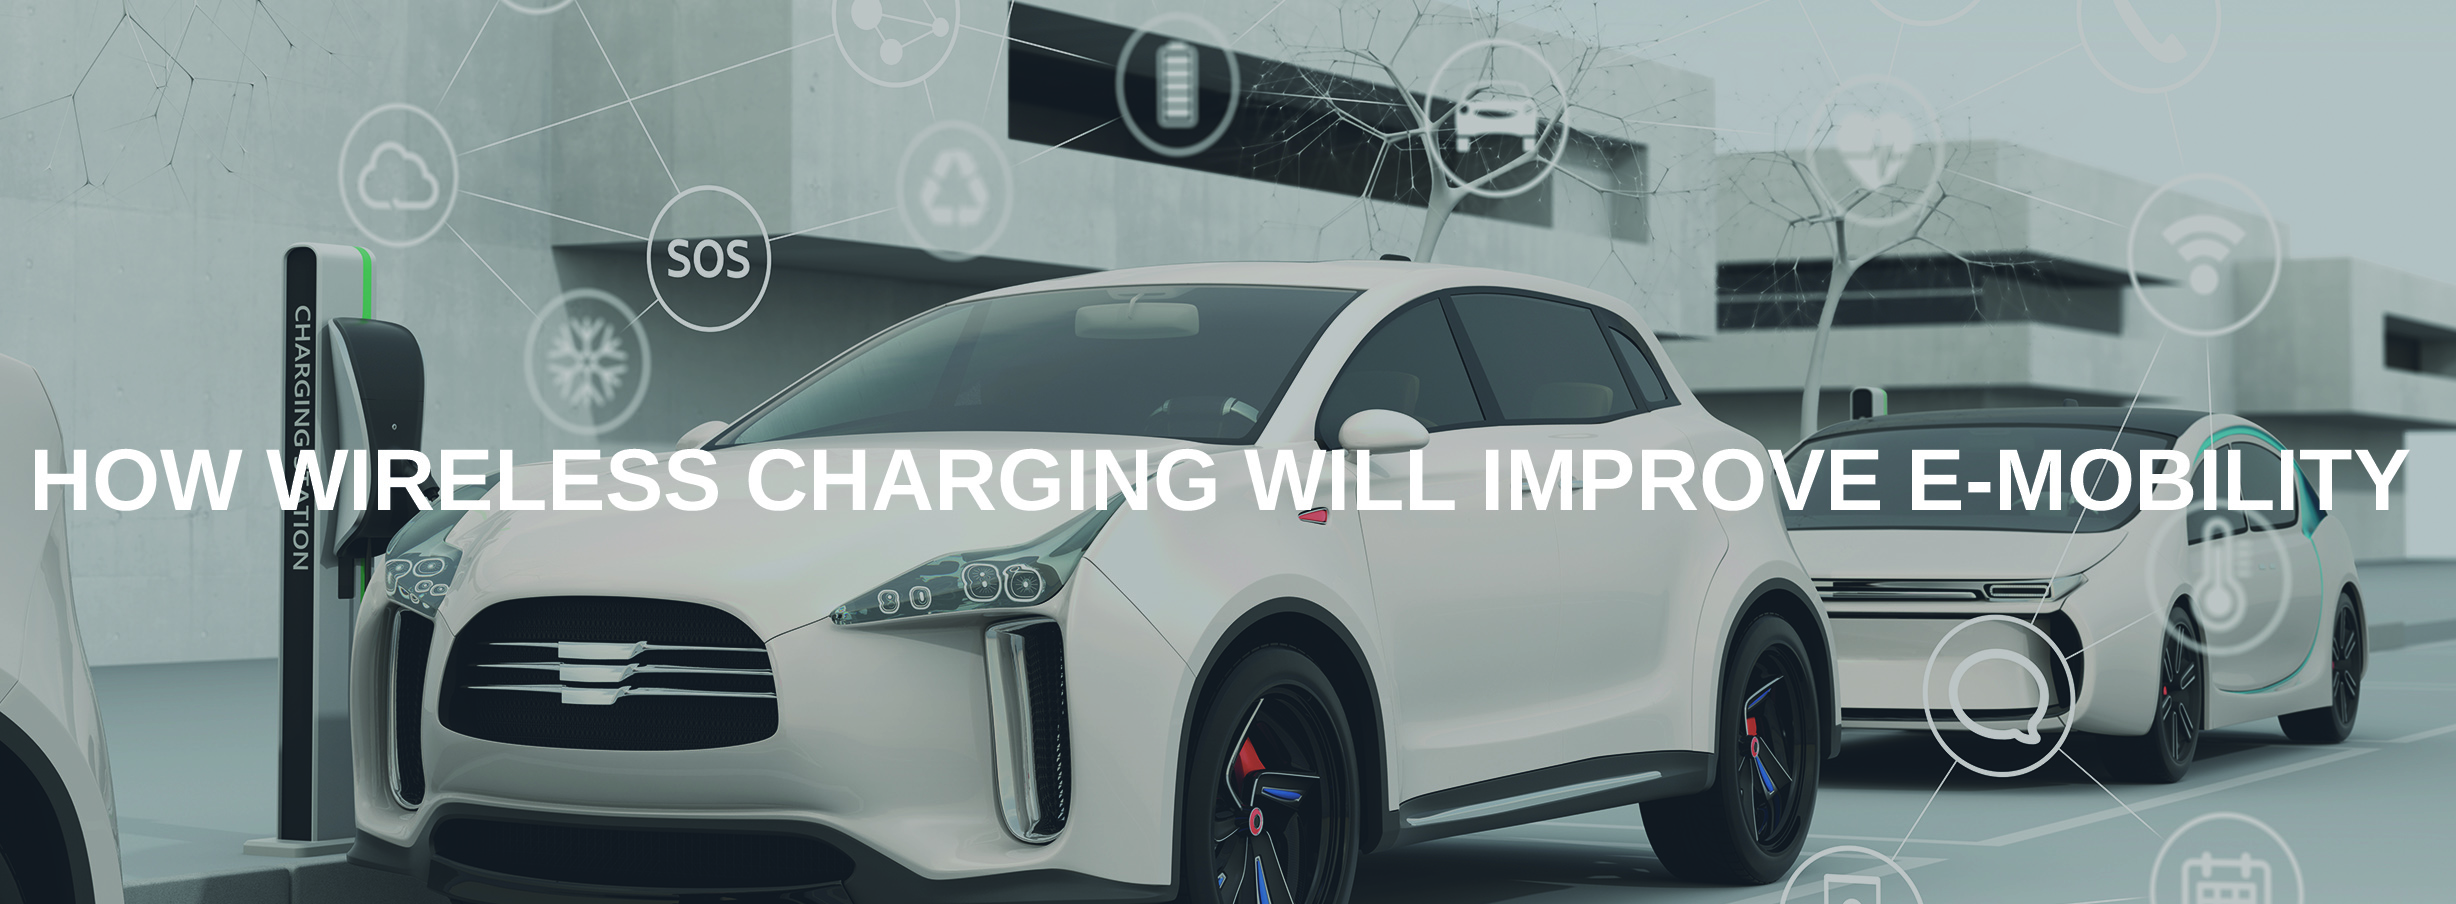 How Wireless Charging Will Improve E-mobility